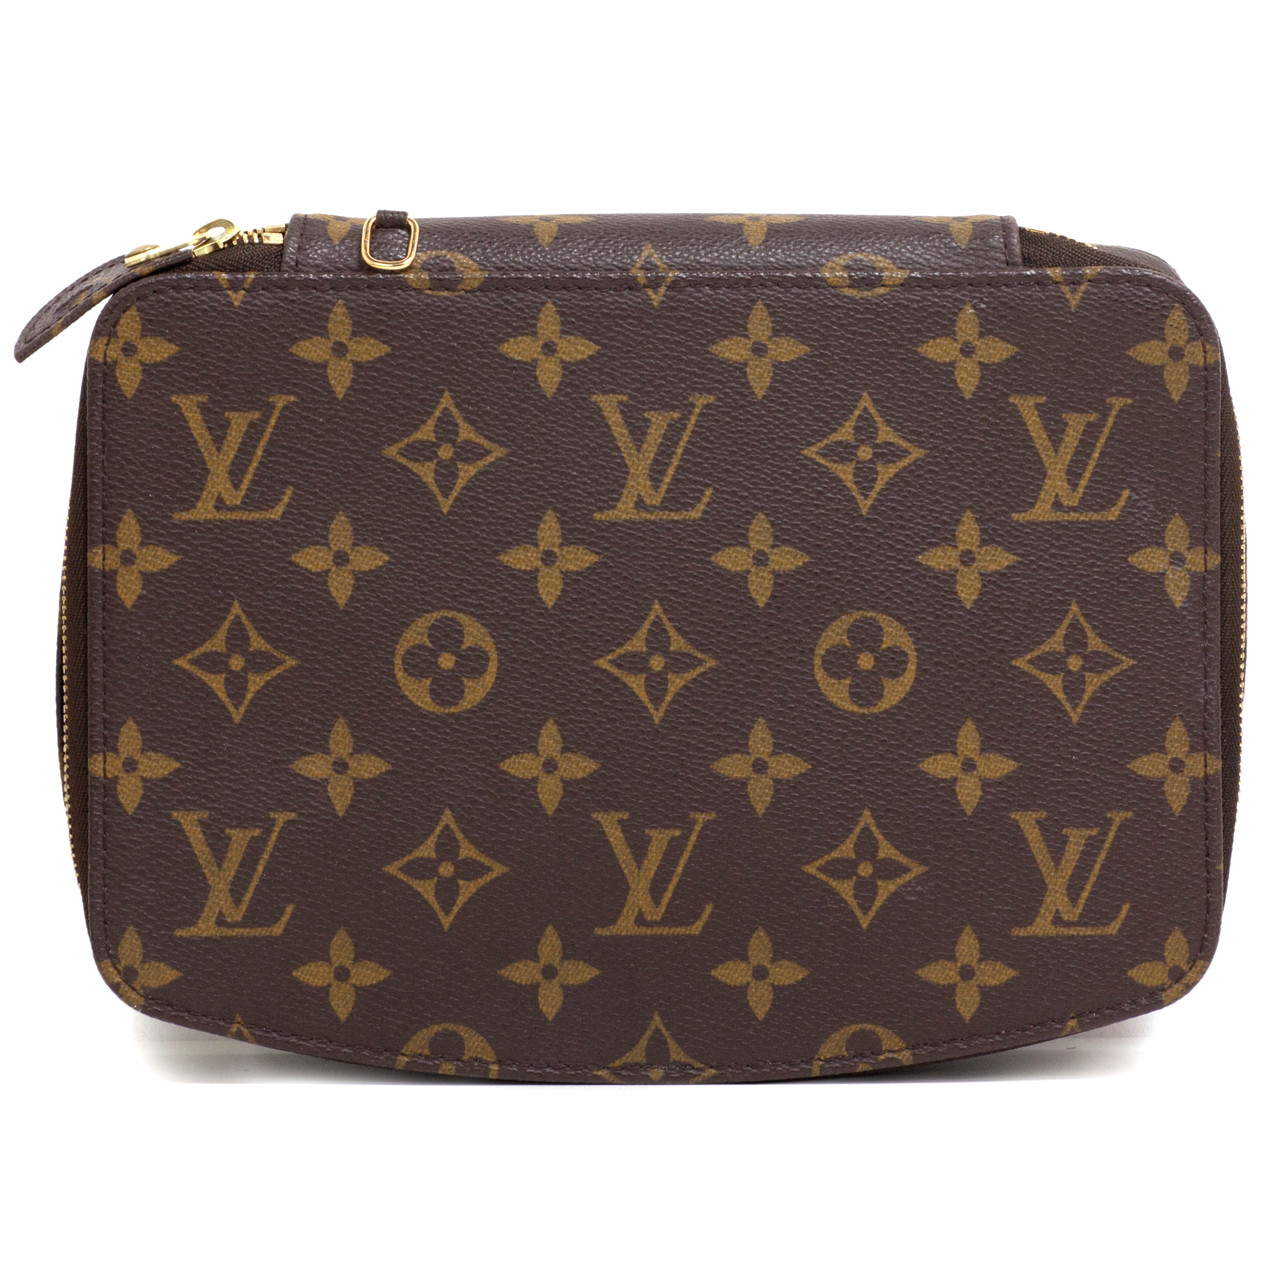 82ae980a1dbf Travelling with your precious jewelry and accessories is no easy feat. Do  so with luxury with this Louis Vuitton Monte Carlo Jewelry Box.